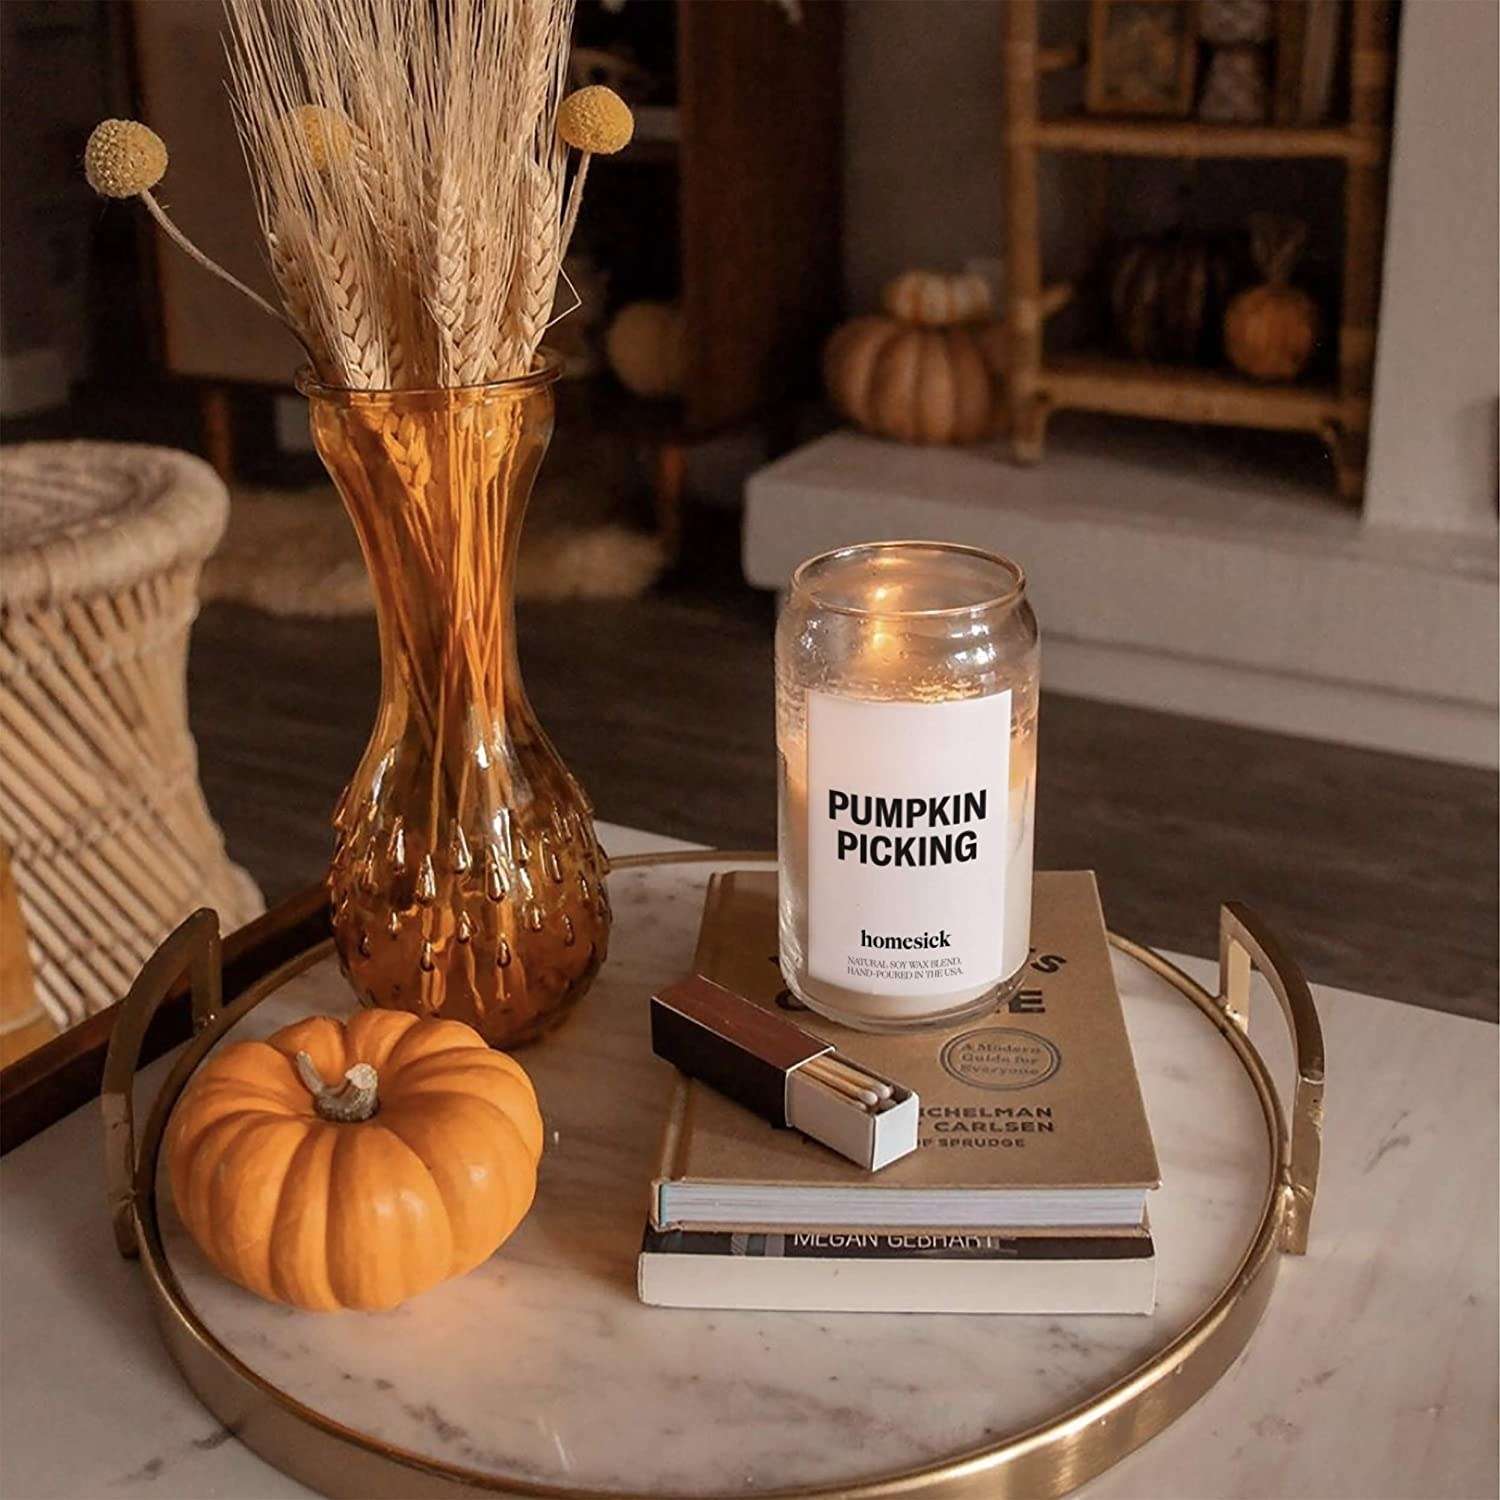 """a candle with a label on it that says """"pumpkin picking"""" near other fall decor"""